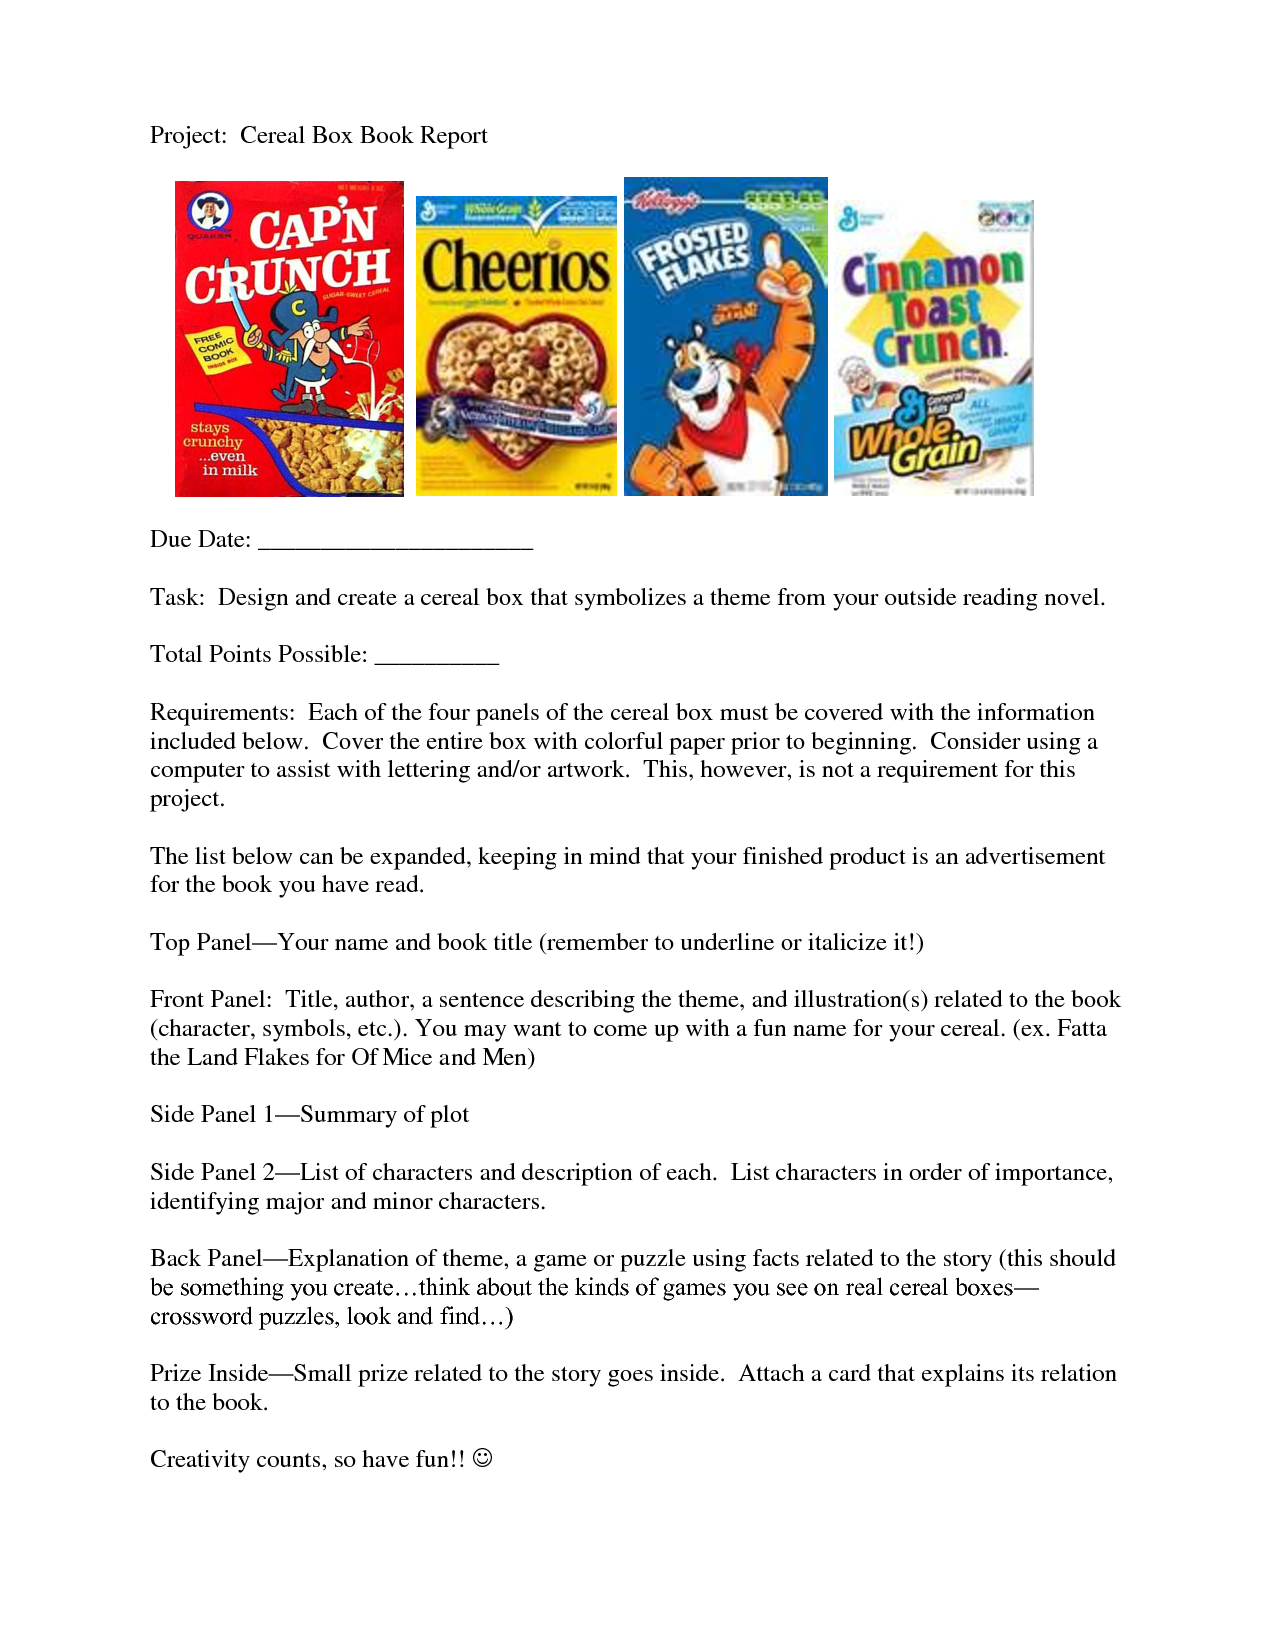 Cereal Box Book Report Template | Project Cereal Box Book Report ...